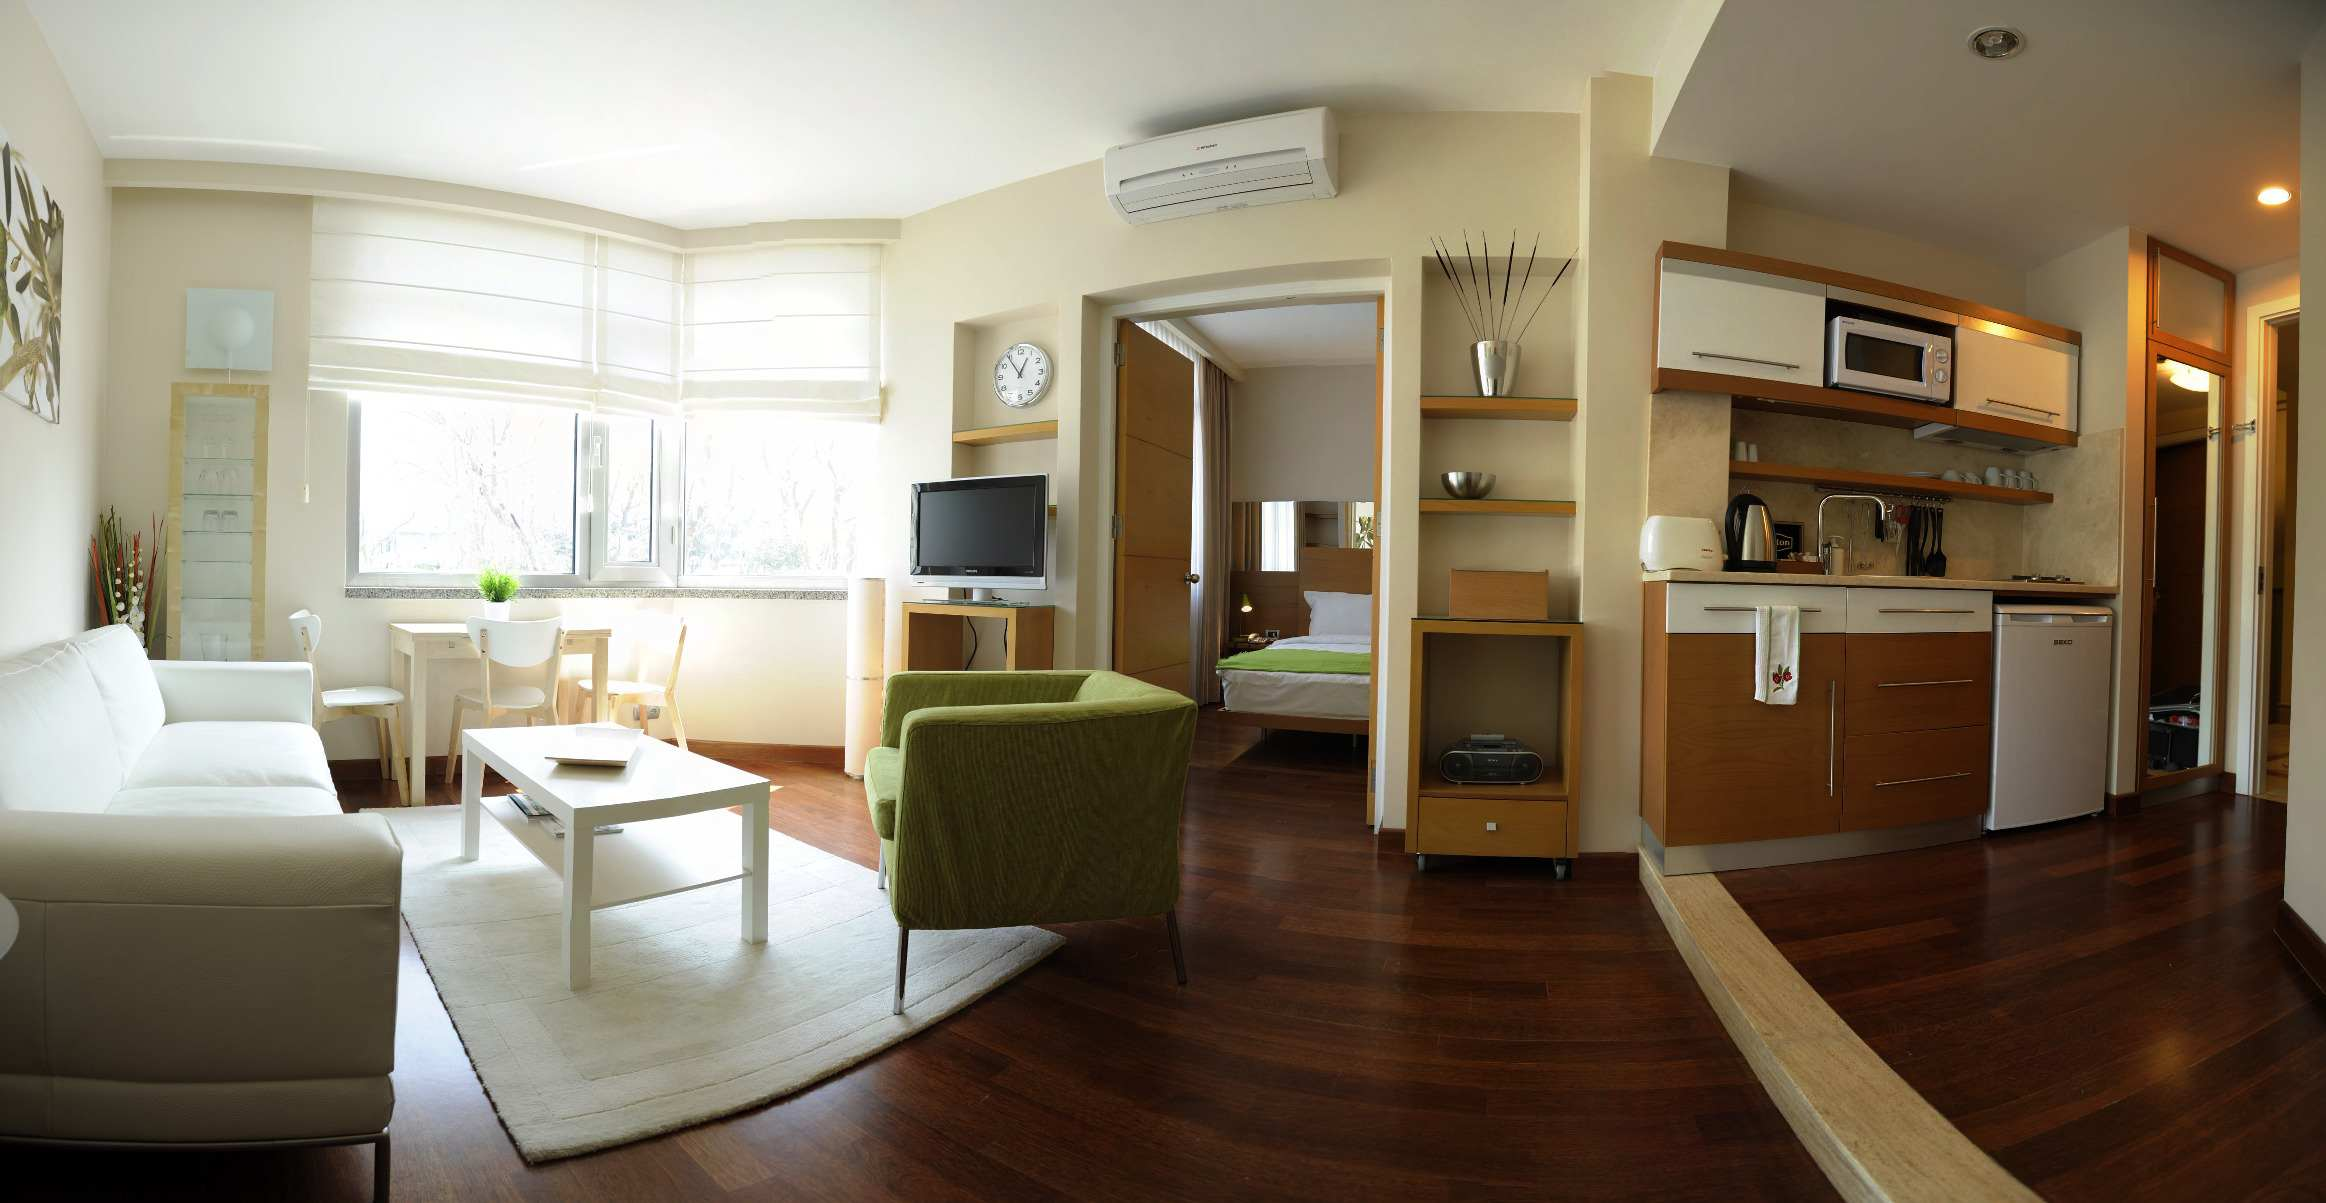 Rooms: Connecting Family Suites